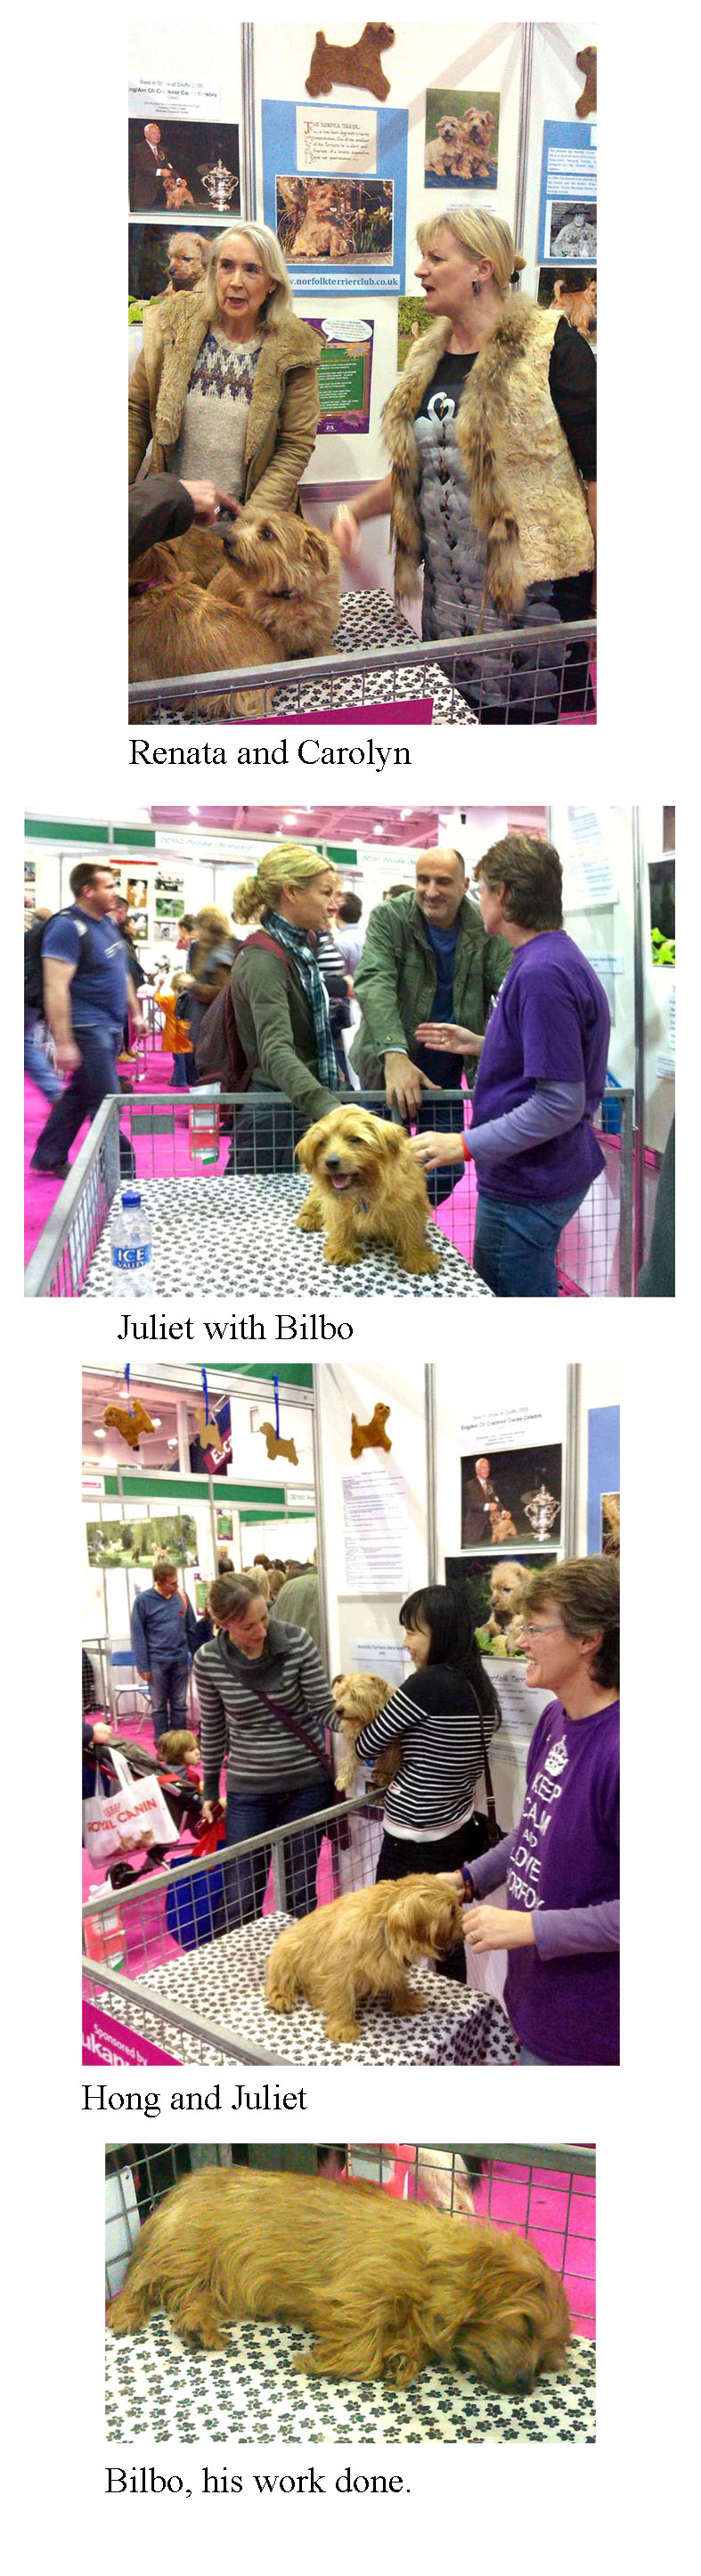 Discover Dogs 2013 London